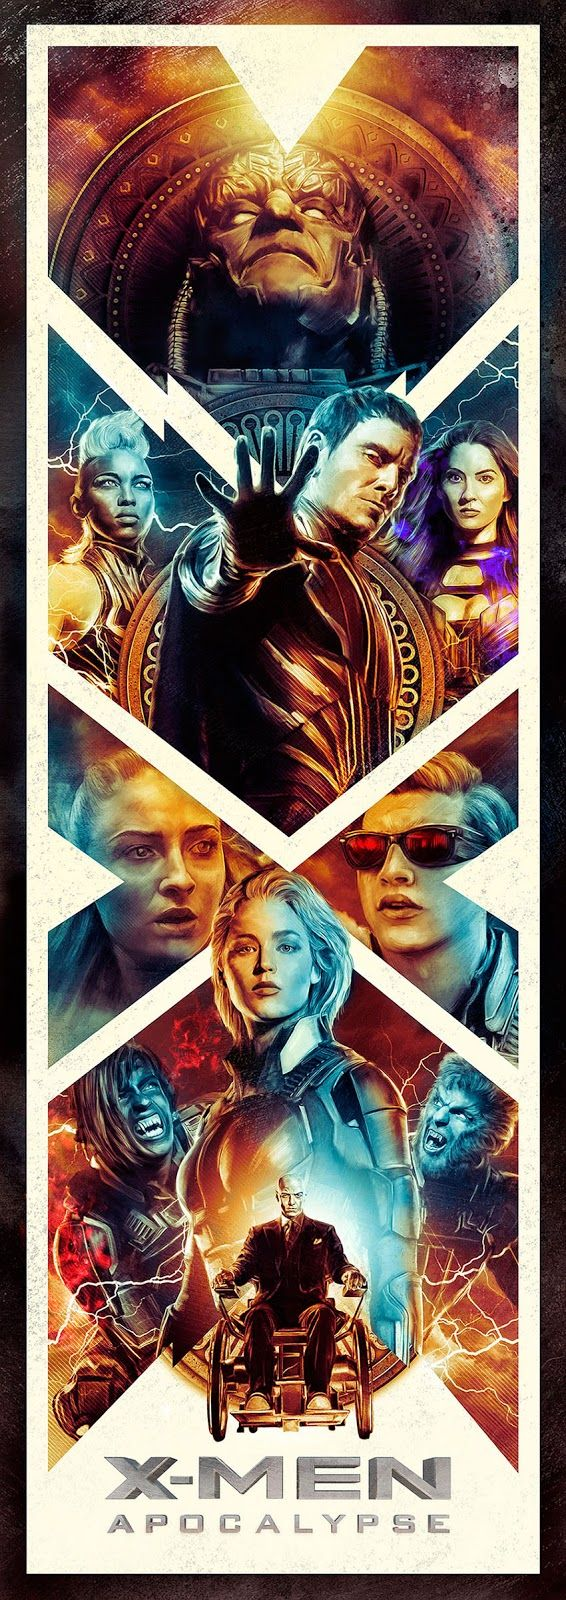 'X-Men: Apocalypse' by Rich Davies